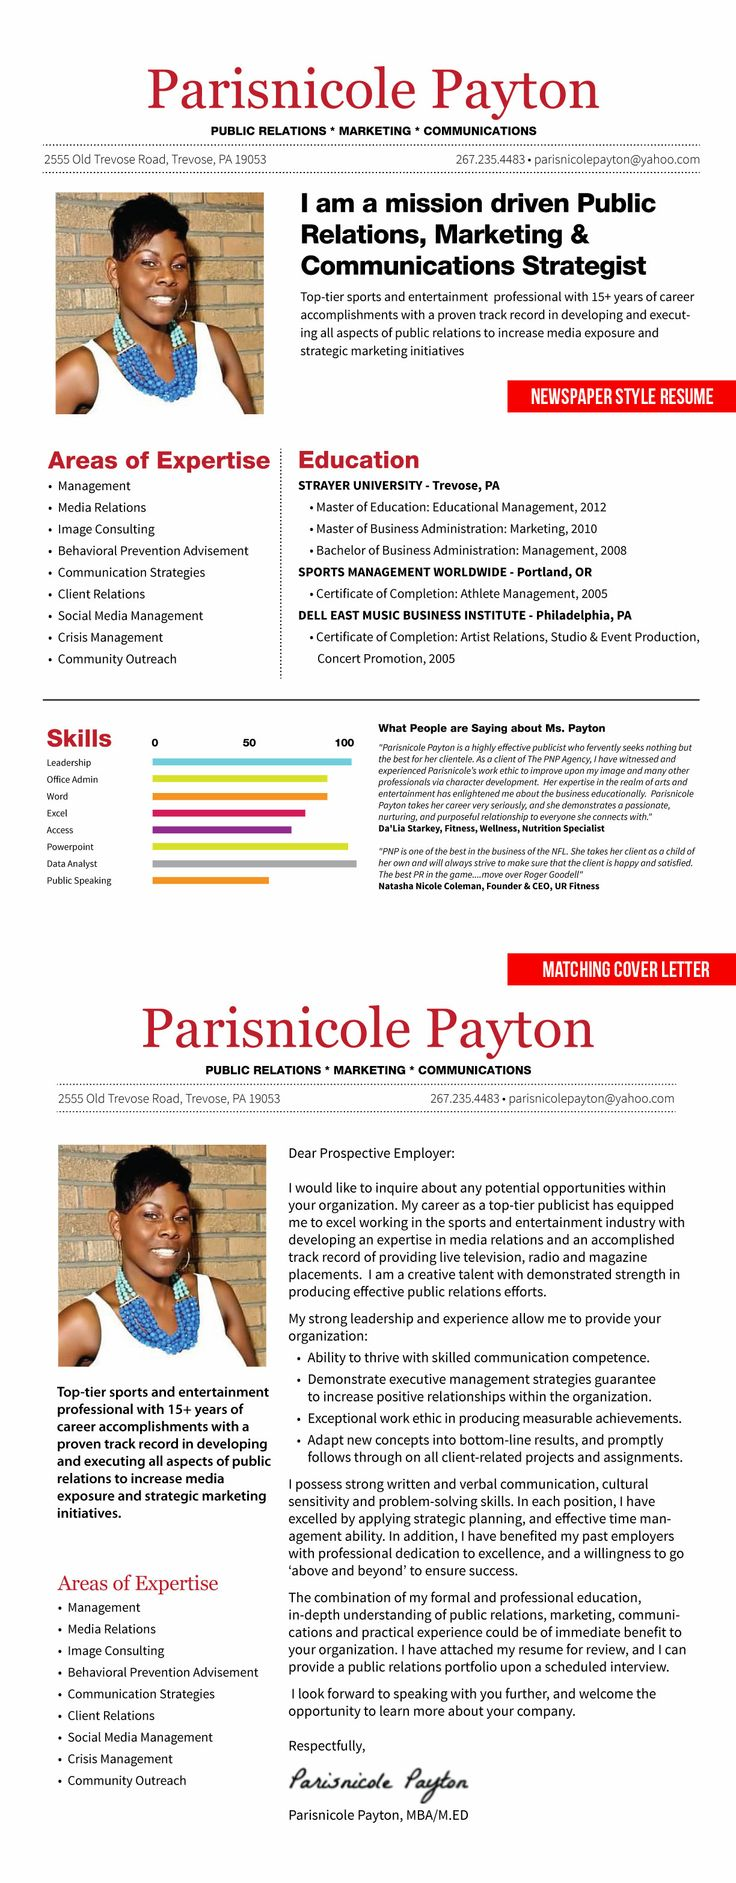 design of resume in magazinenewspaper format order now and get this unique resume